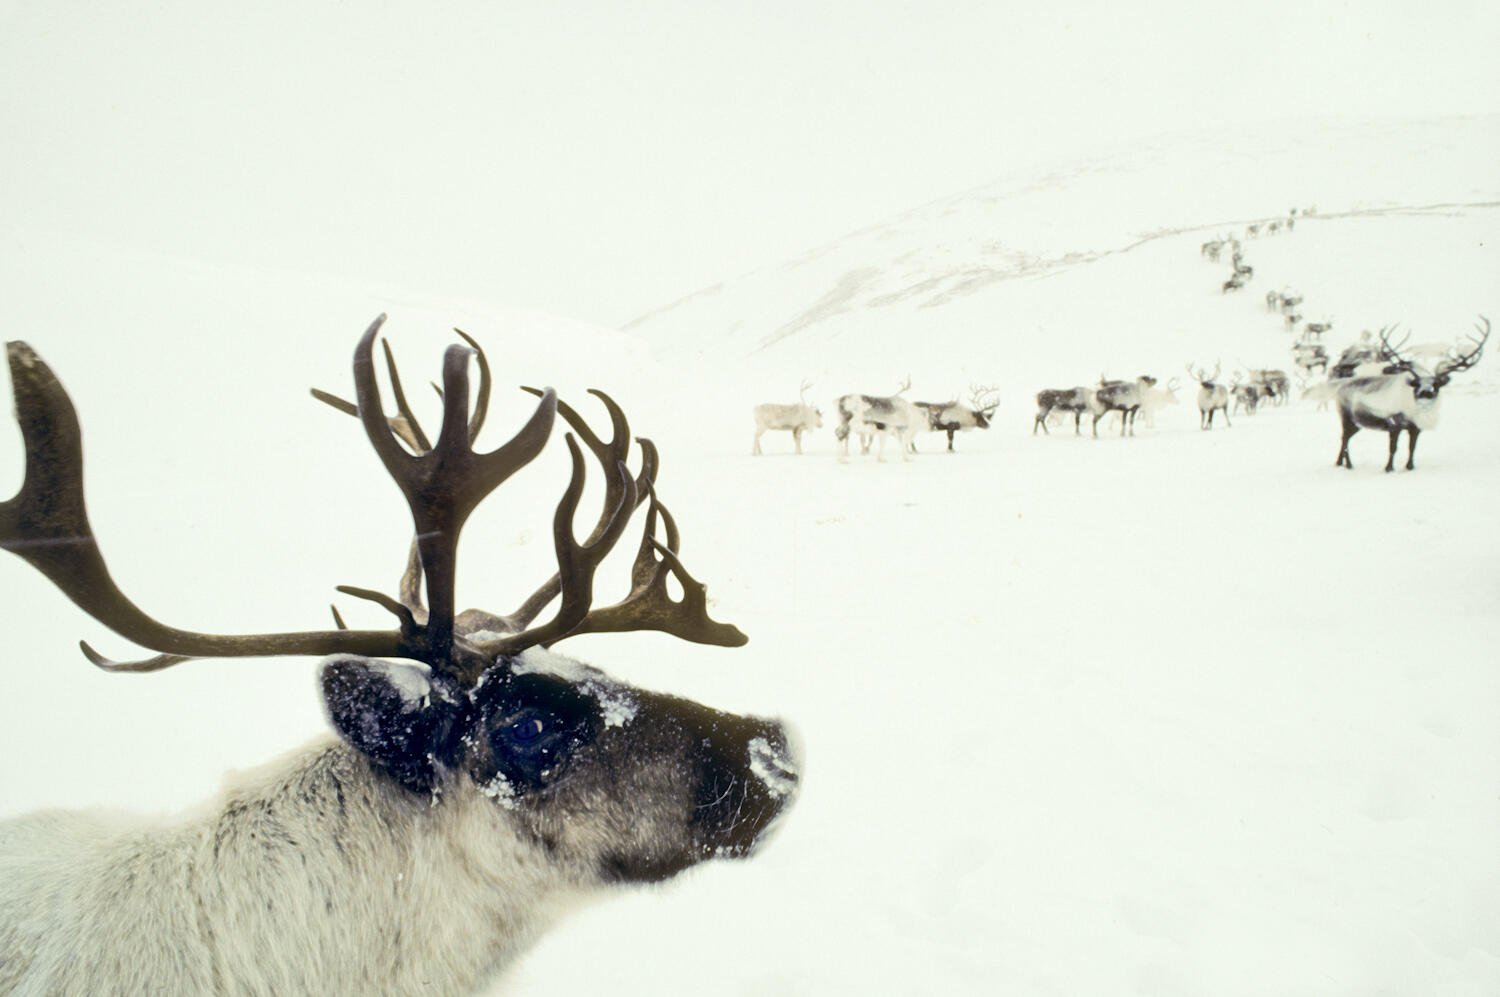 Reindeer in Chukotka Peninsula, Russia Photograph by Natalie Fobes